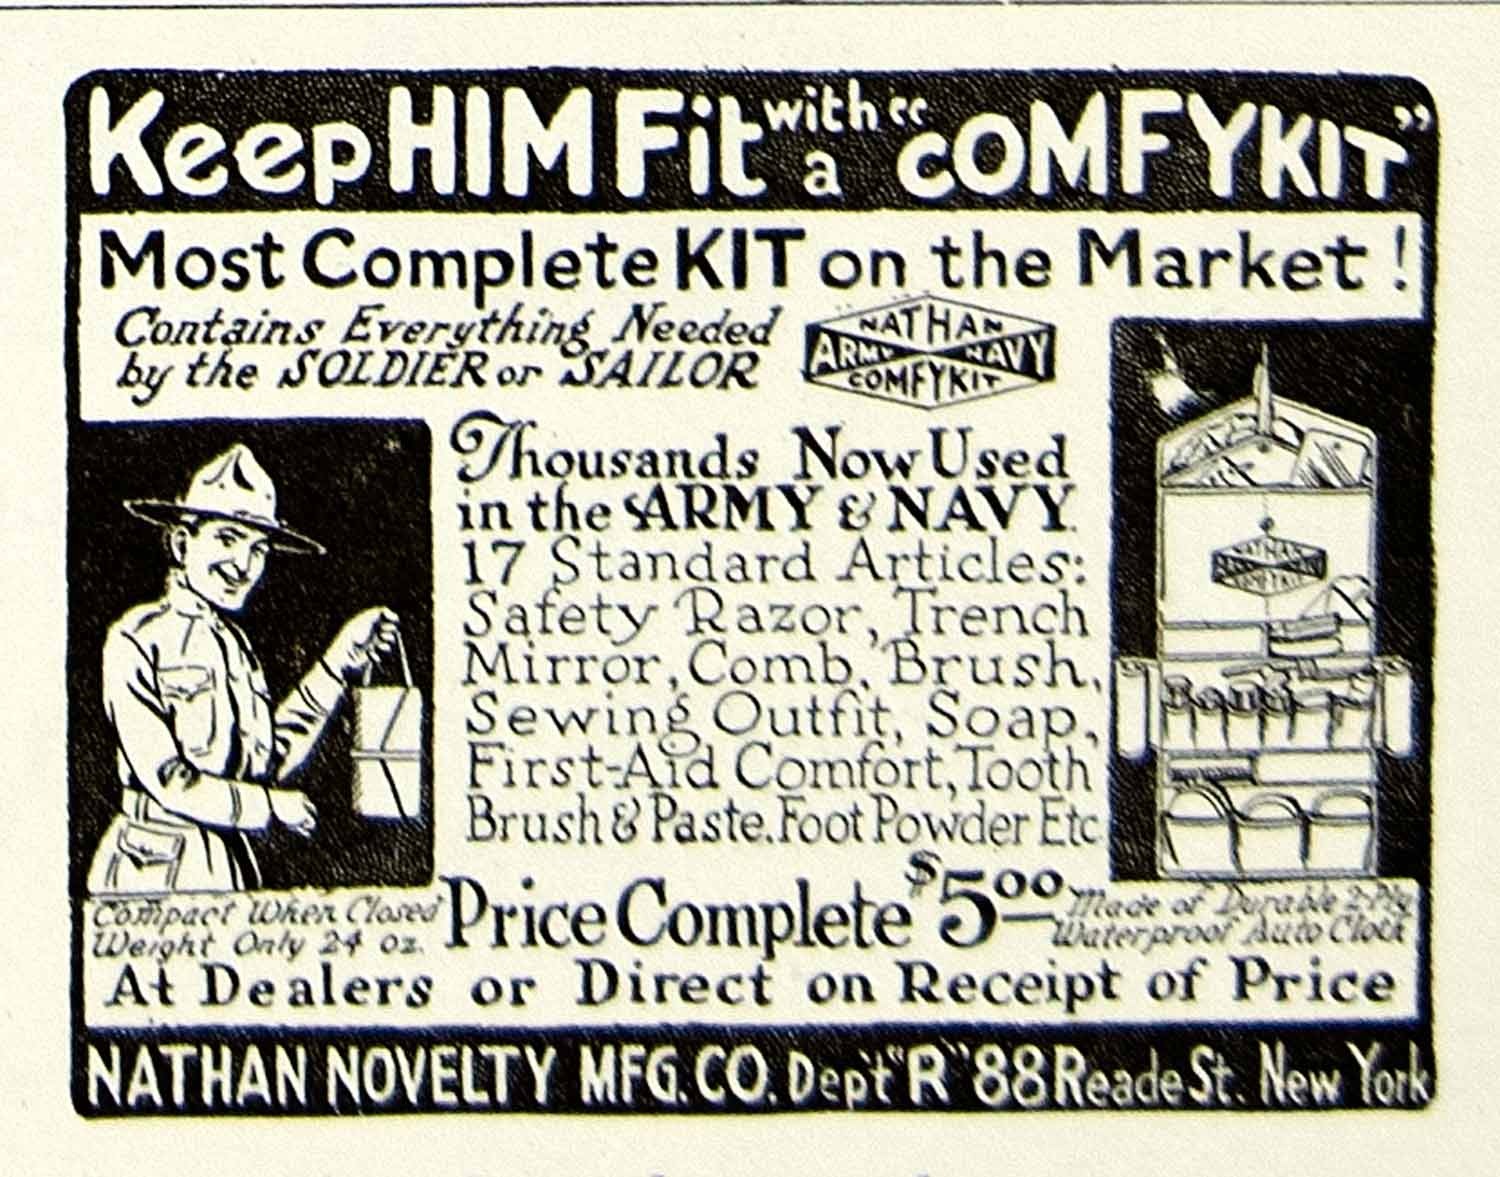 1918 Ad ComfyKit Dept R 88 Reade St New York Nathan Novelty WWI Army Navy YRC1